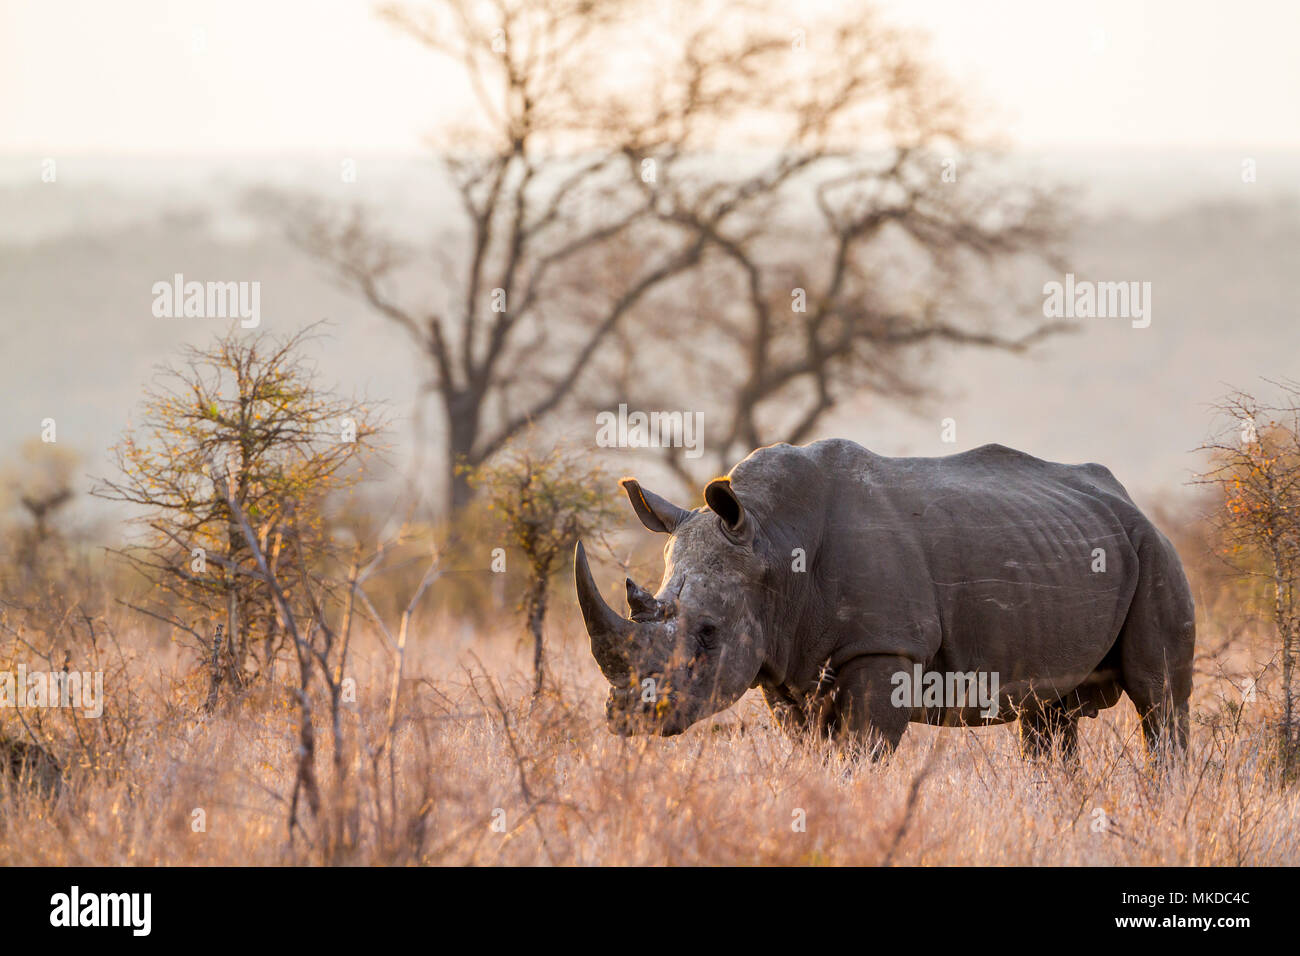 Southern white rhinoceros (Ceratotherium simum simum) in Kruger National park, South Africa - Stock Image